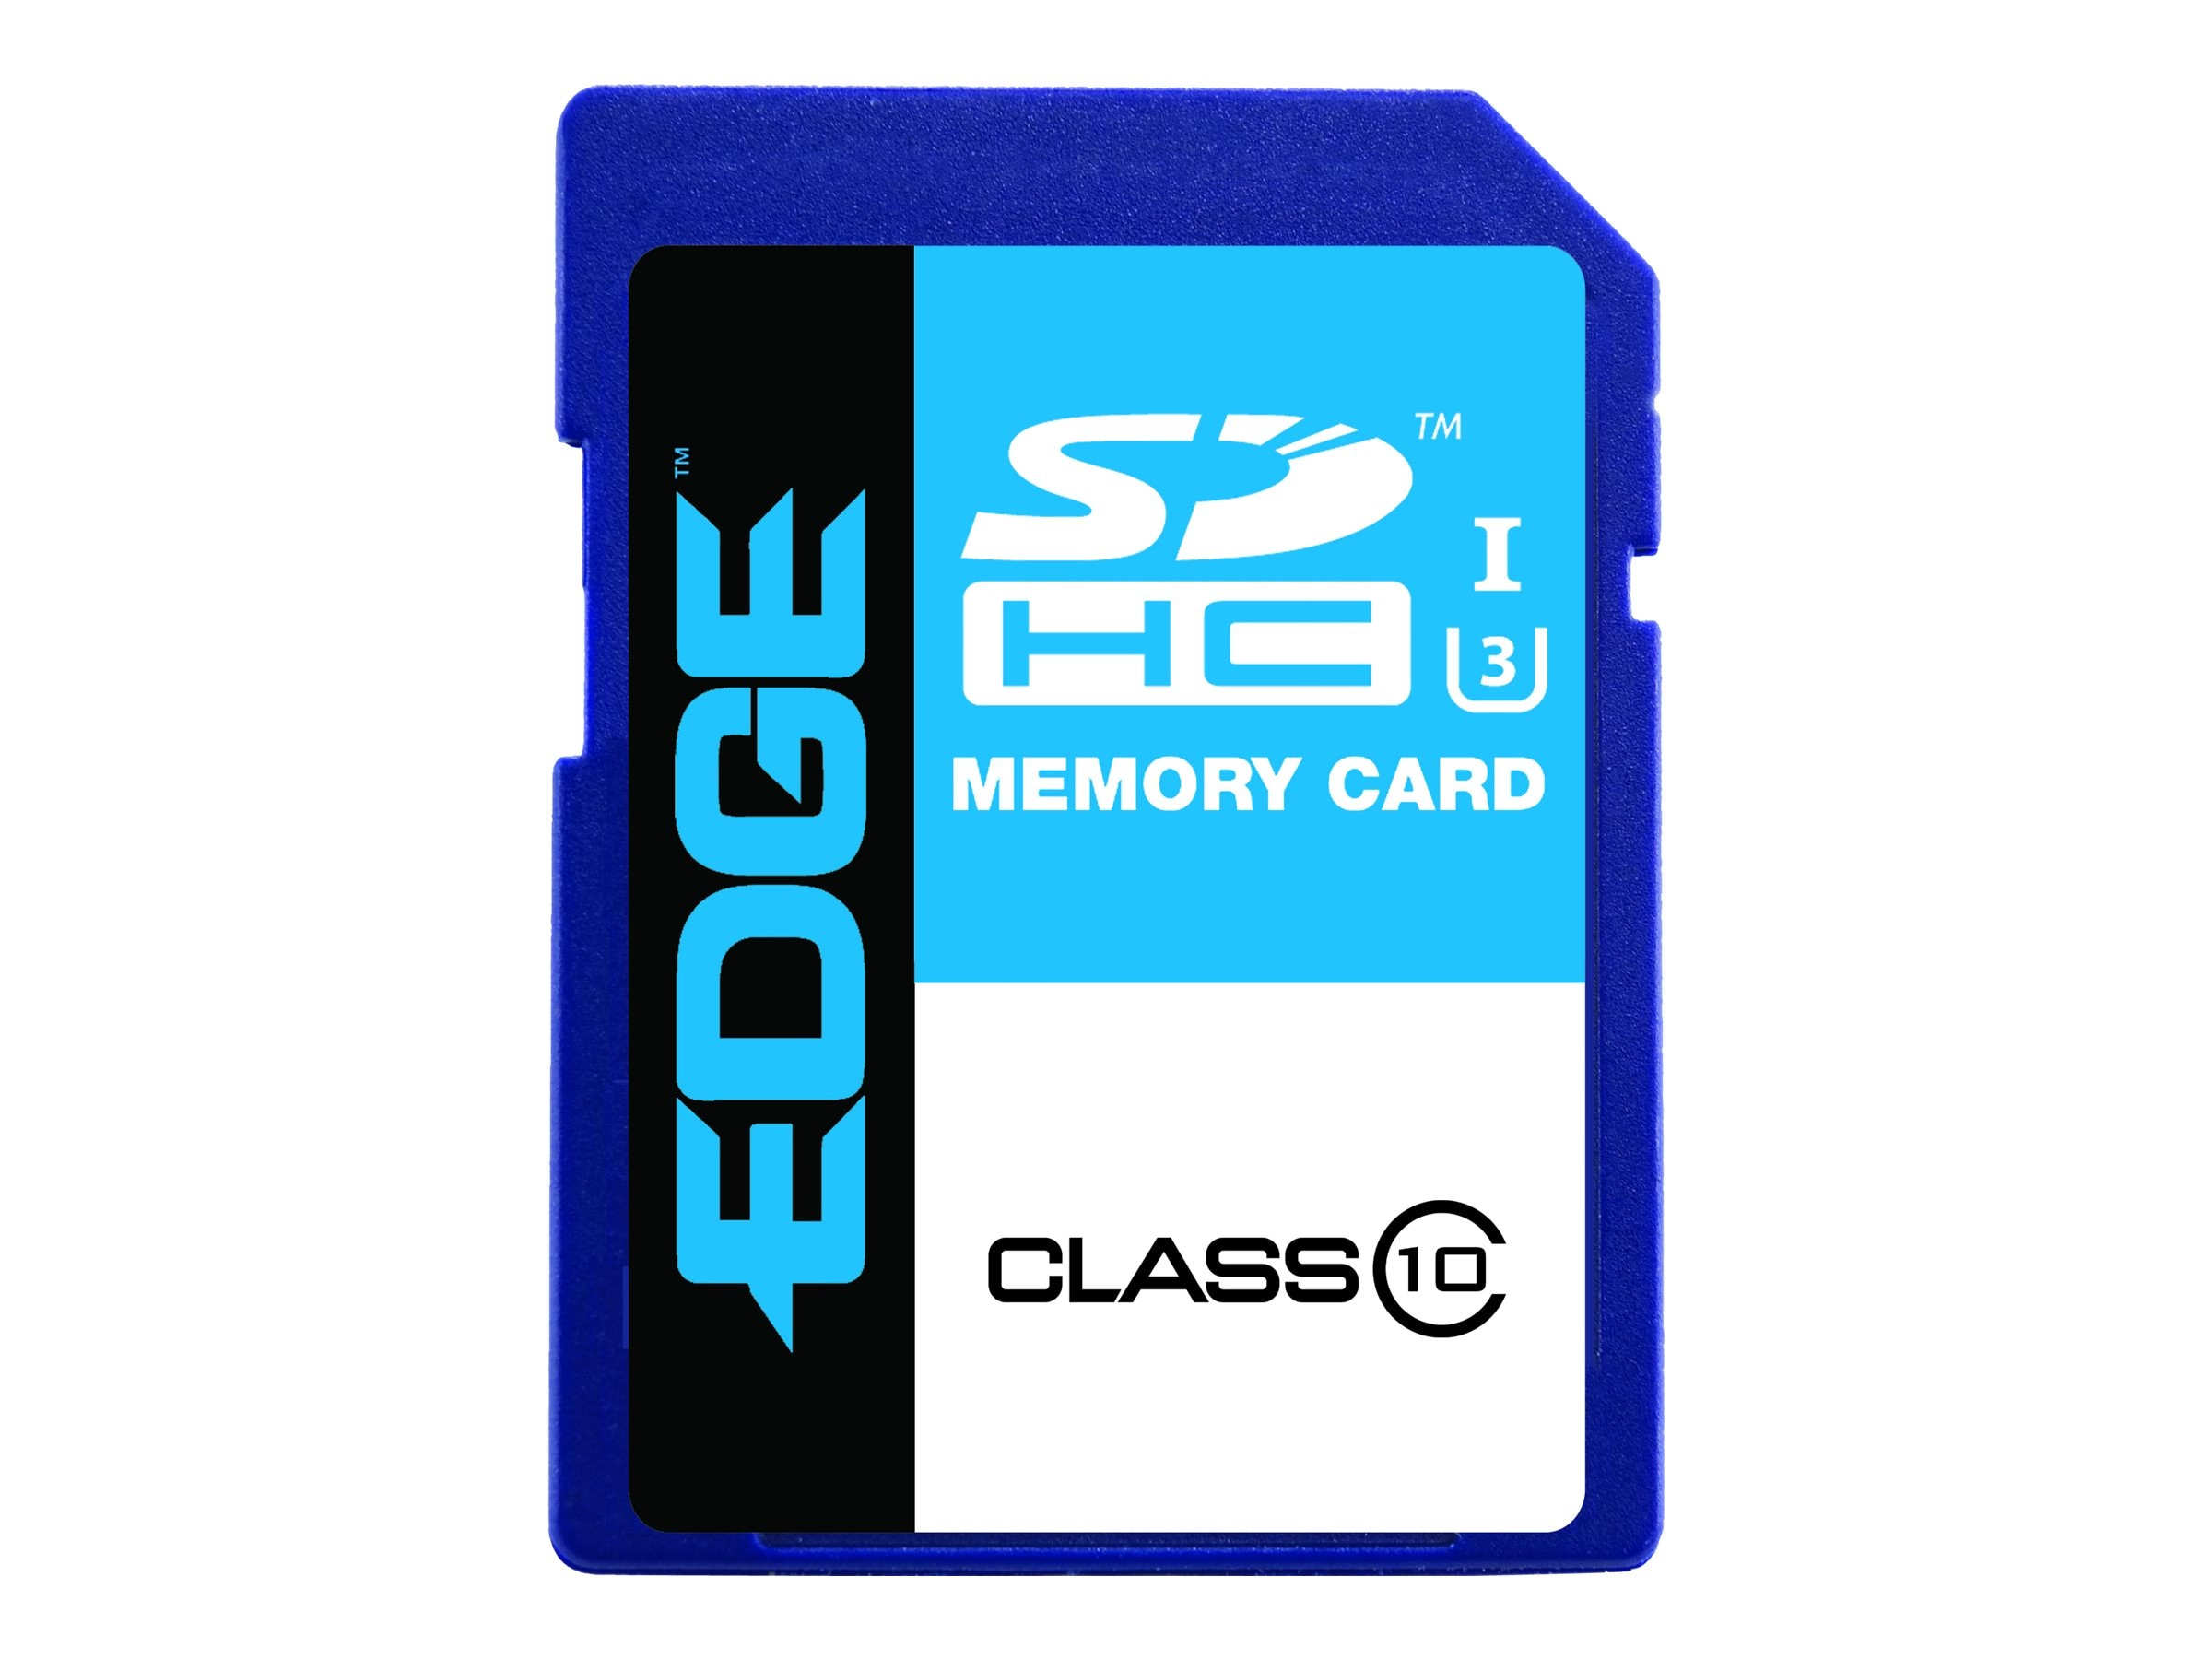 Edge 32GB SDHC UHS-I U3 Flash Memory Card, Class 10, PE248710